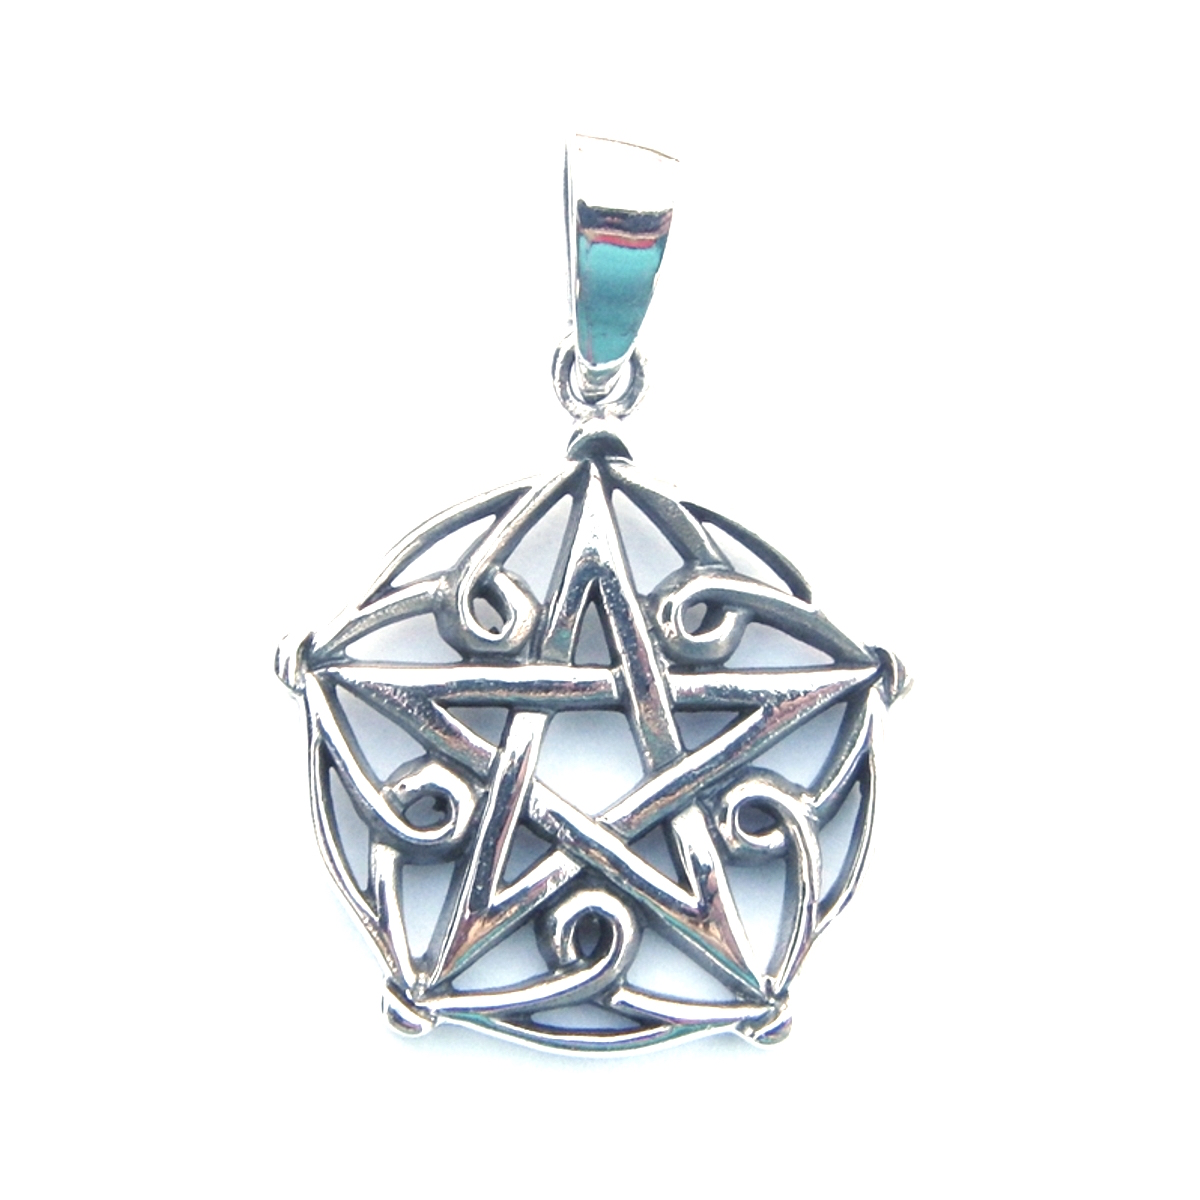 Pretty Patterned Pentagram Pendant.